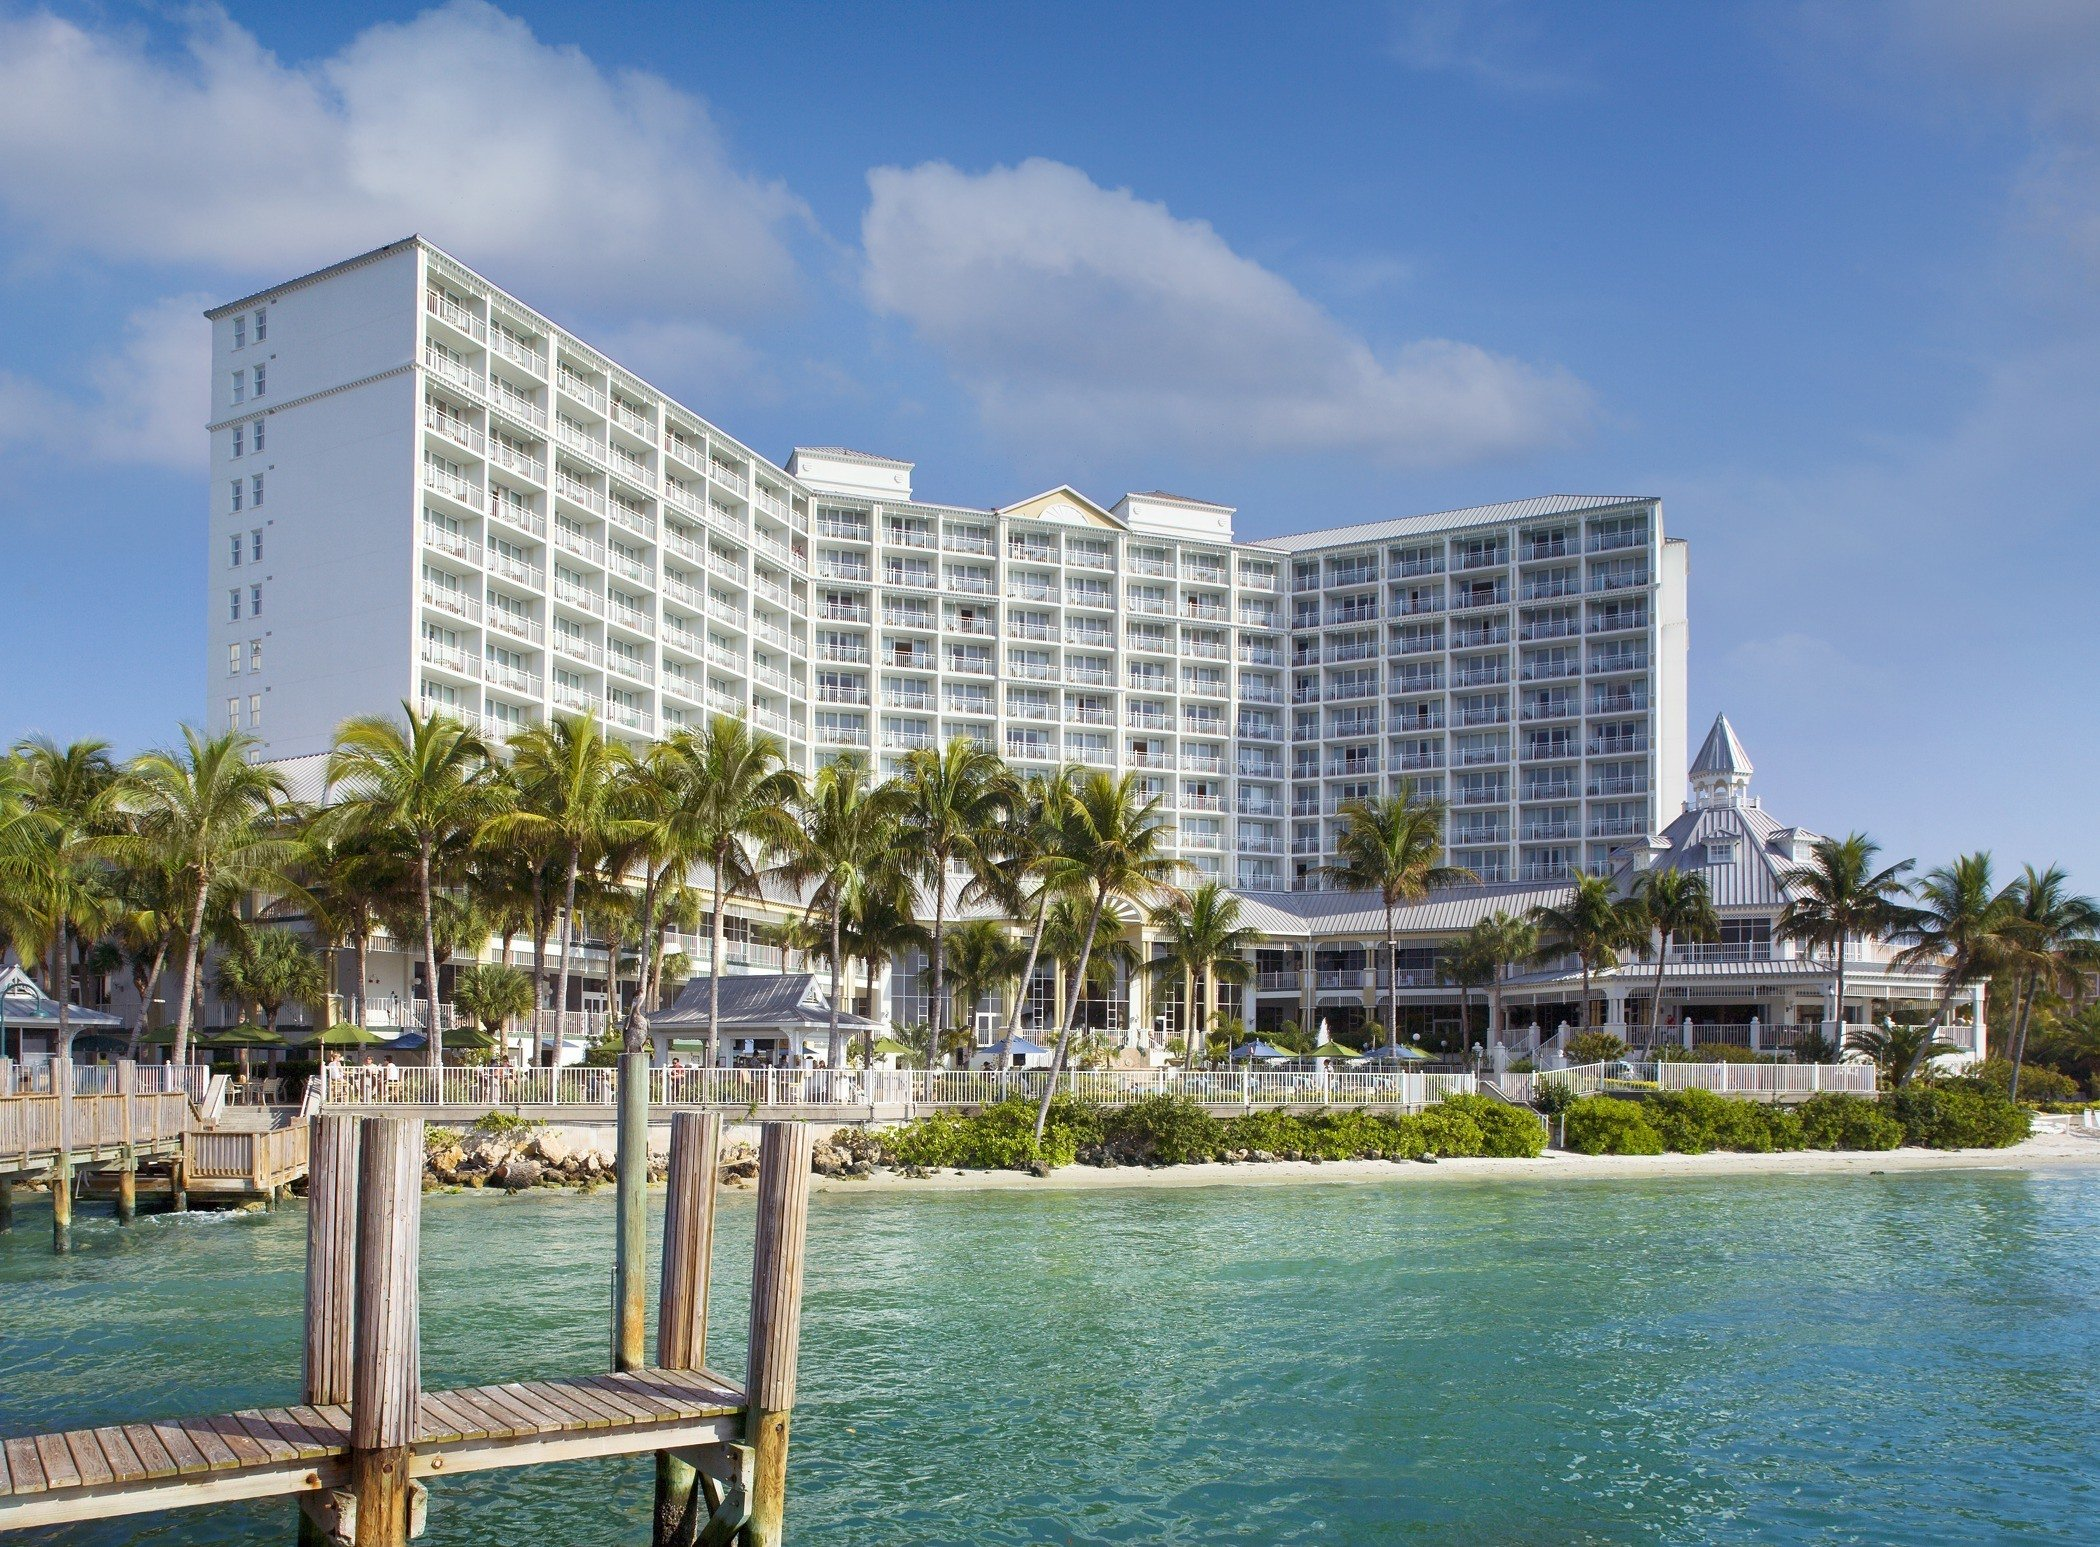 The Sanibel Island Marriott is one of the best hotels in The Beaches of Fort Myers & Sanibel